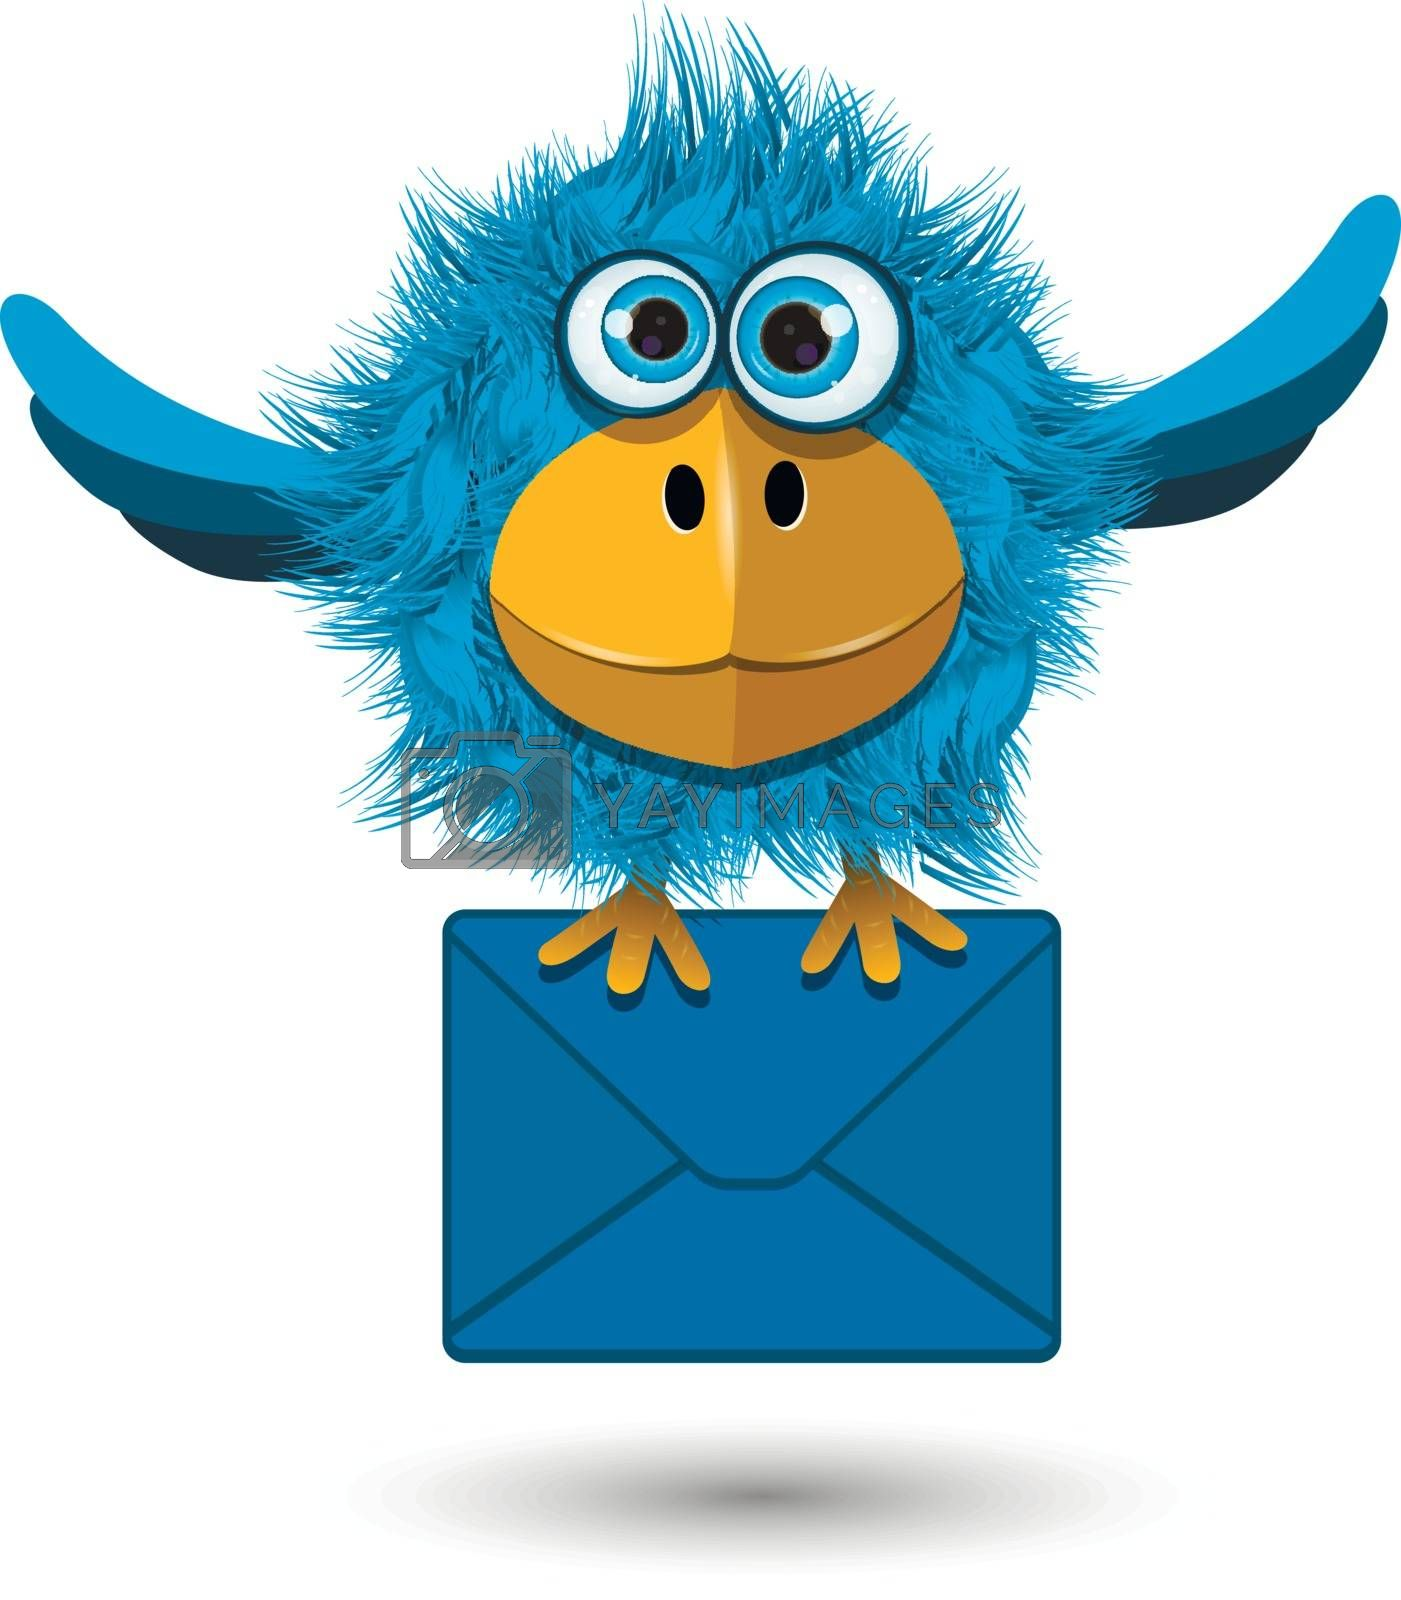 Blue Bird with a blue envelope by brux